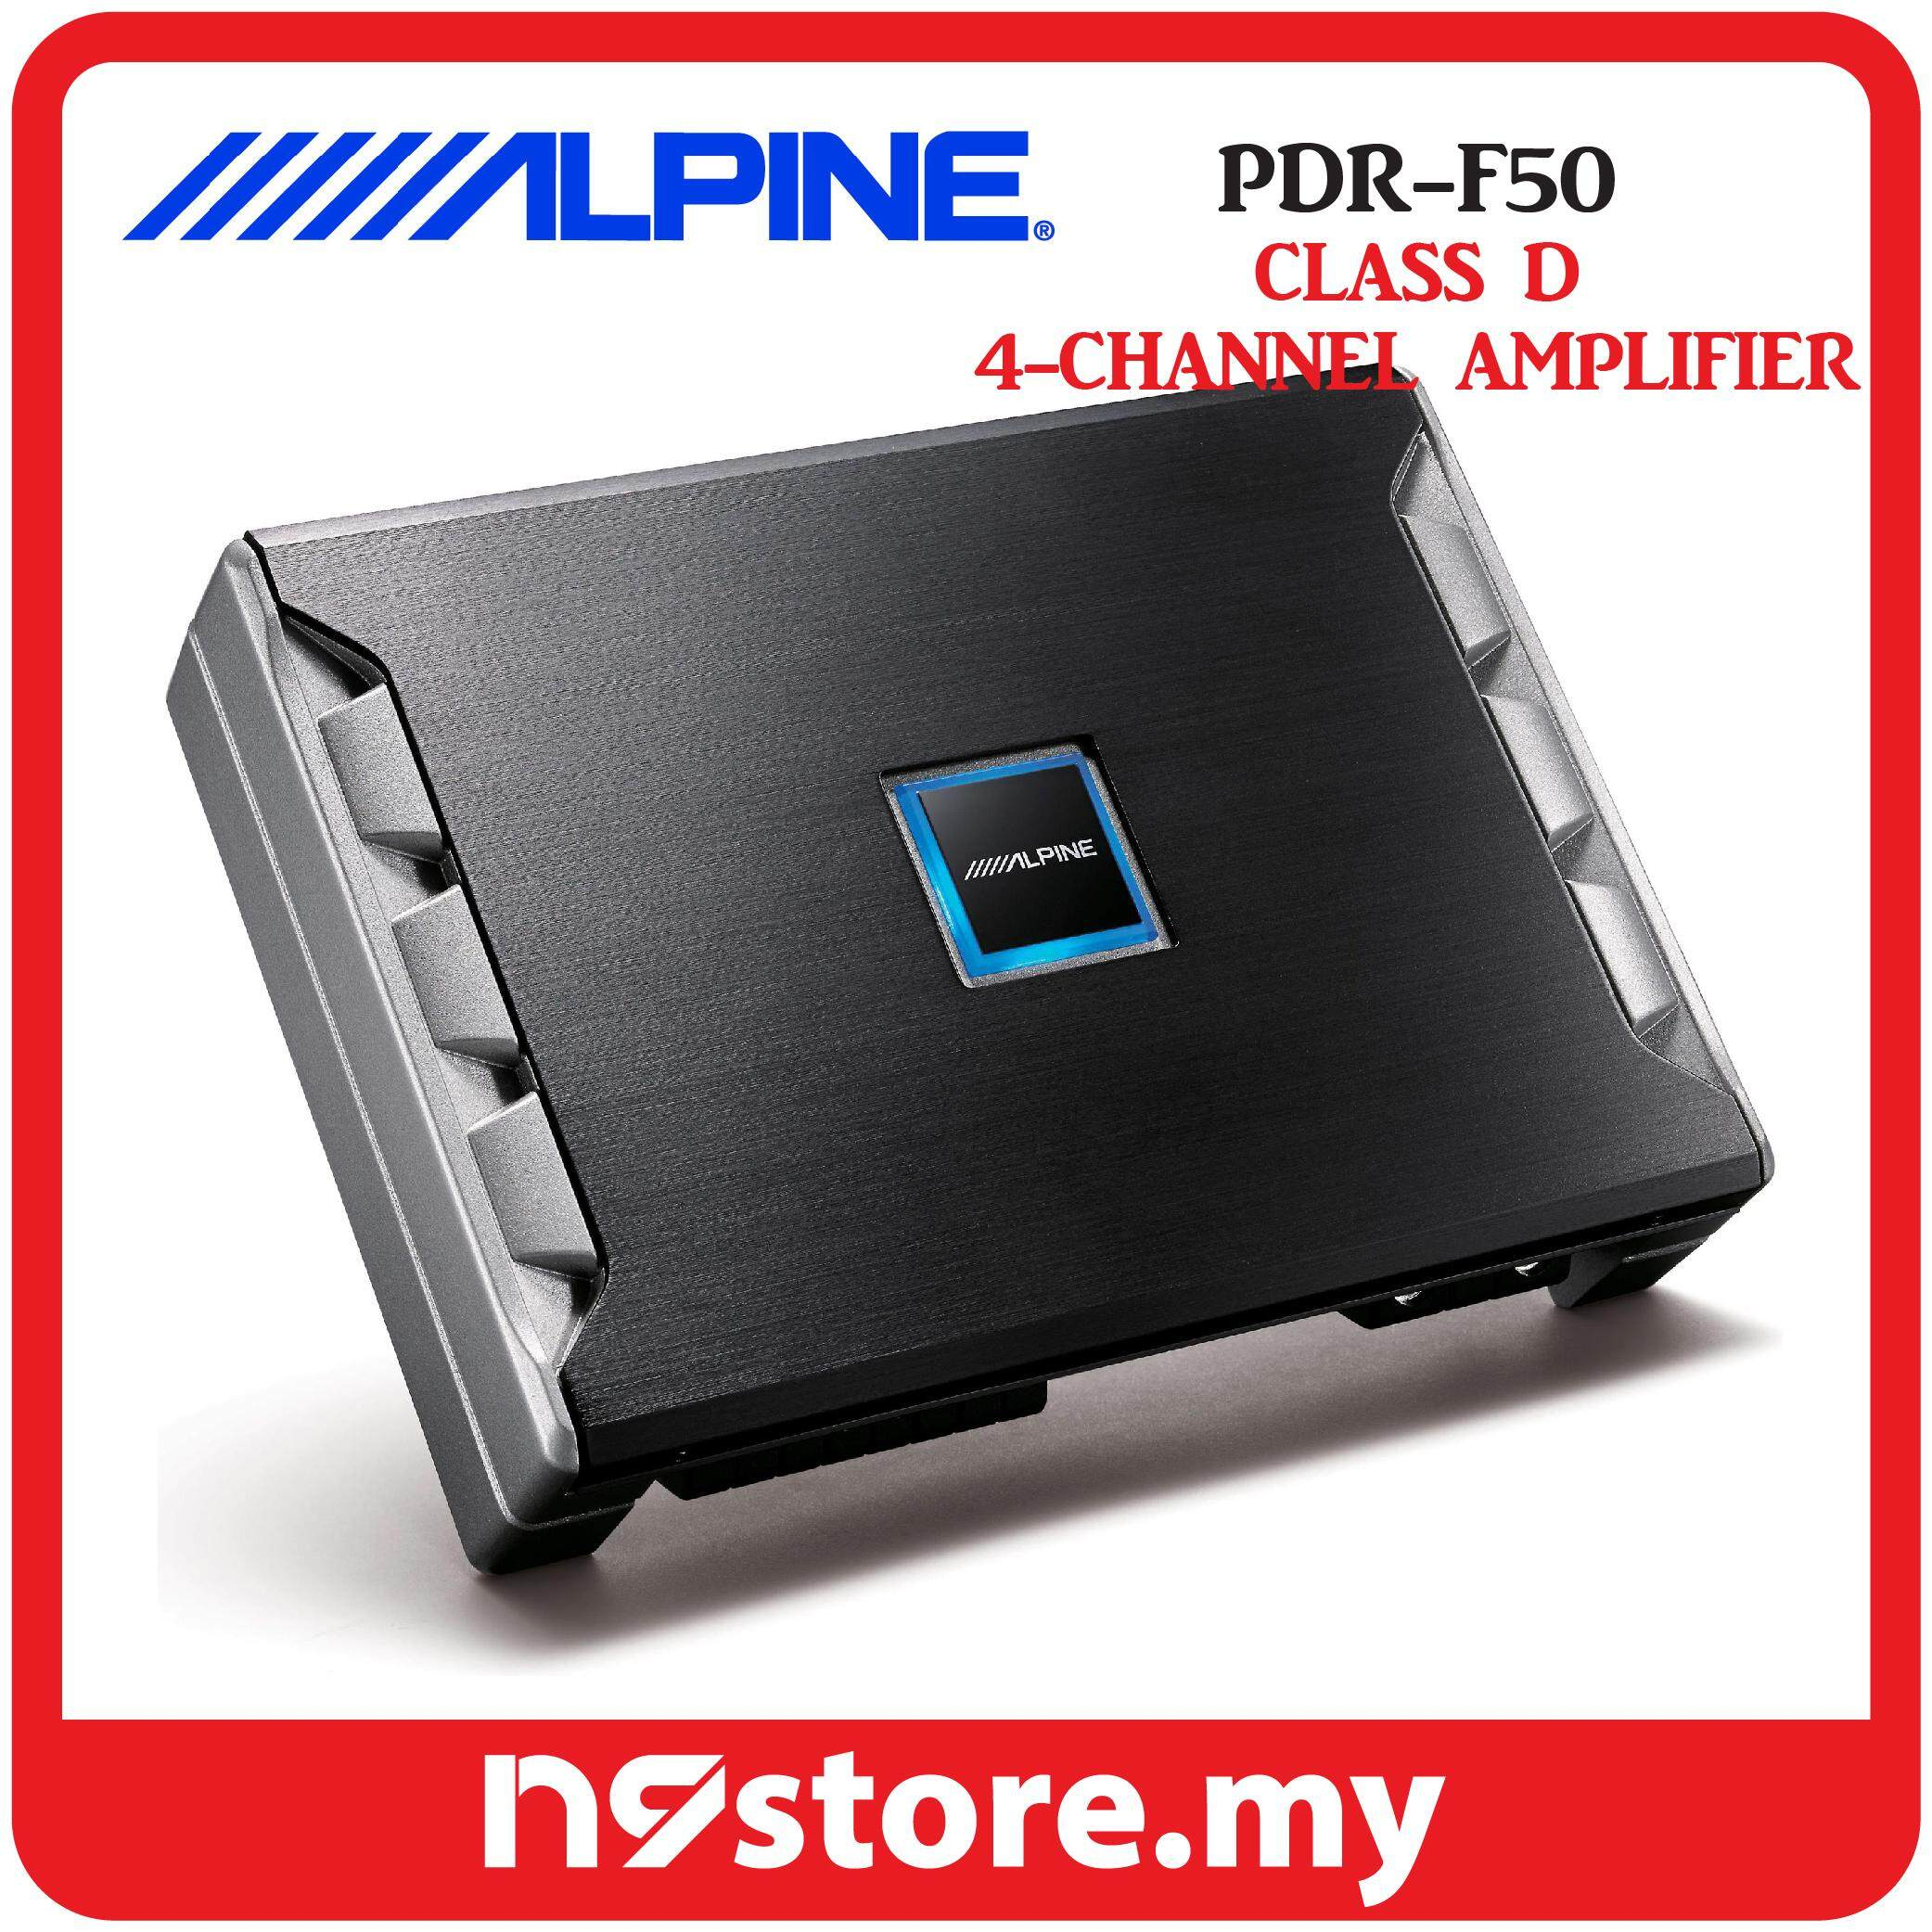 Alpine PDR-F50 PDR Series Class-D 4 Channel Amplifier 85W RMS X 4 At 4 OHMS